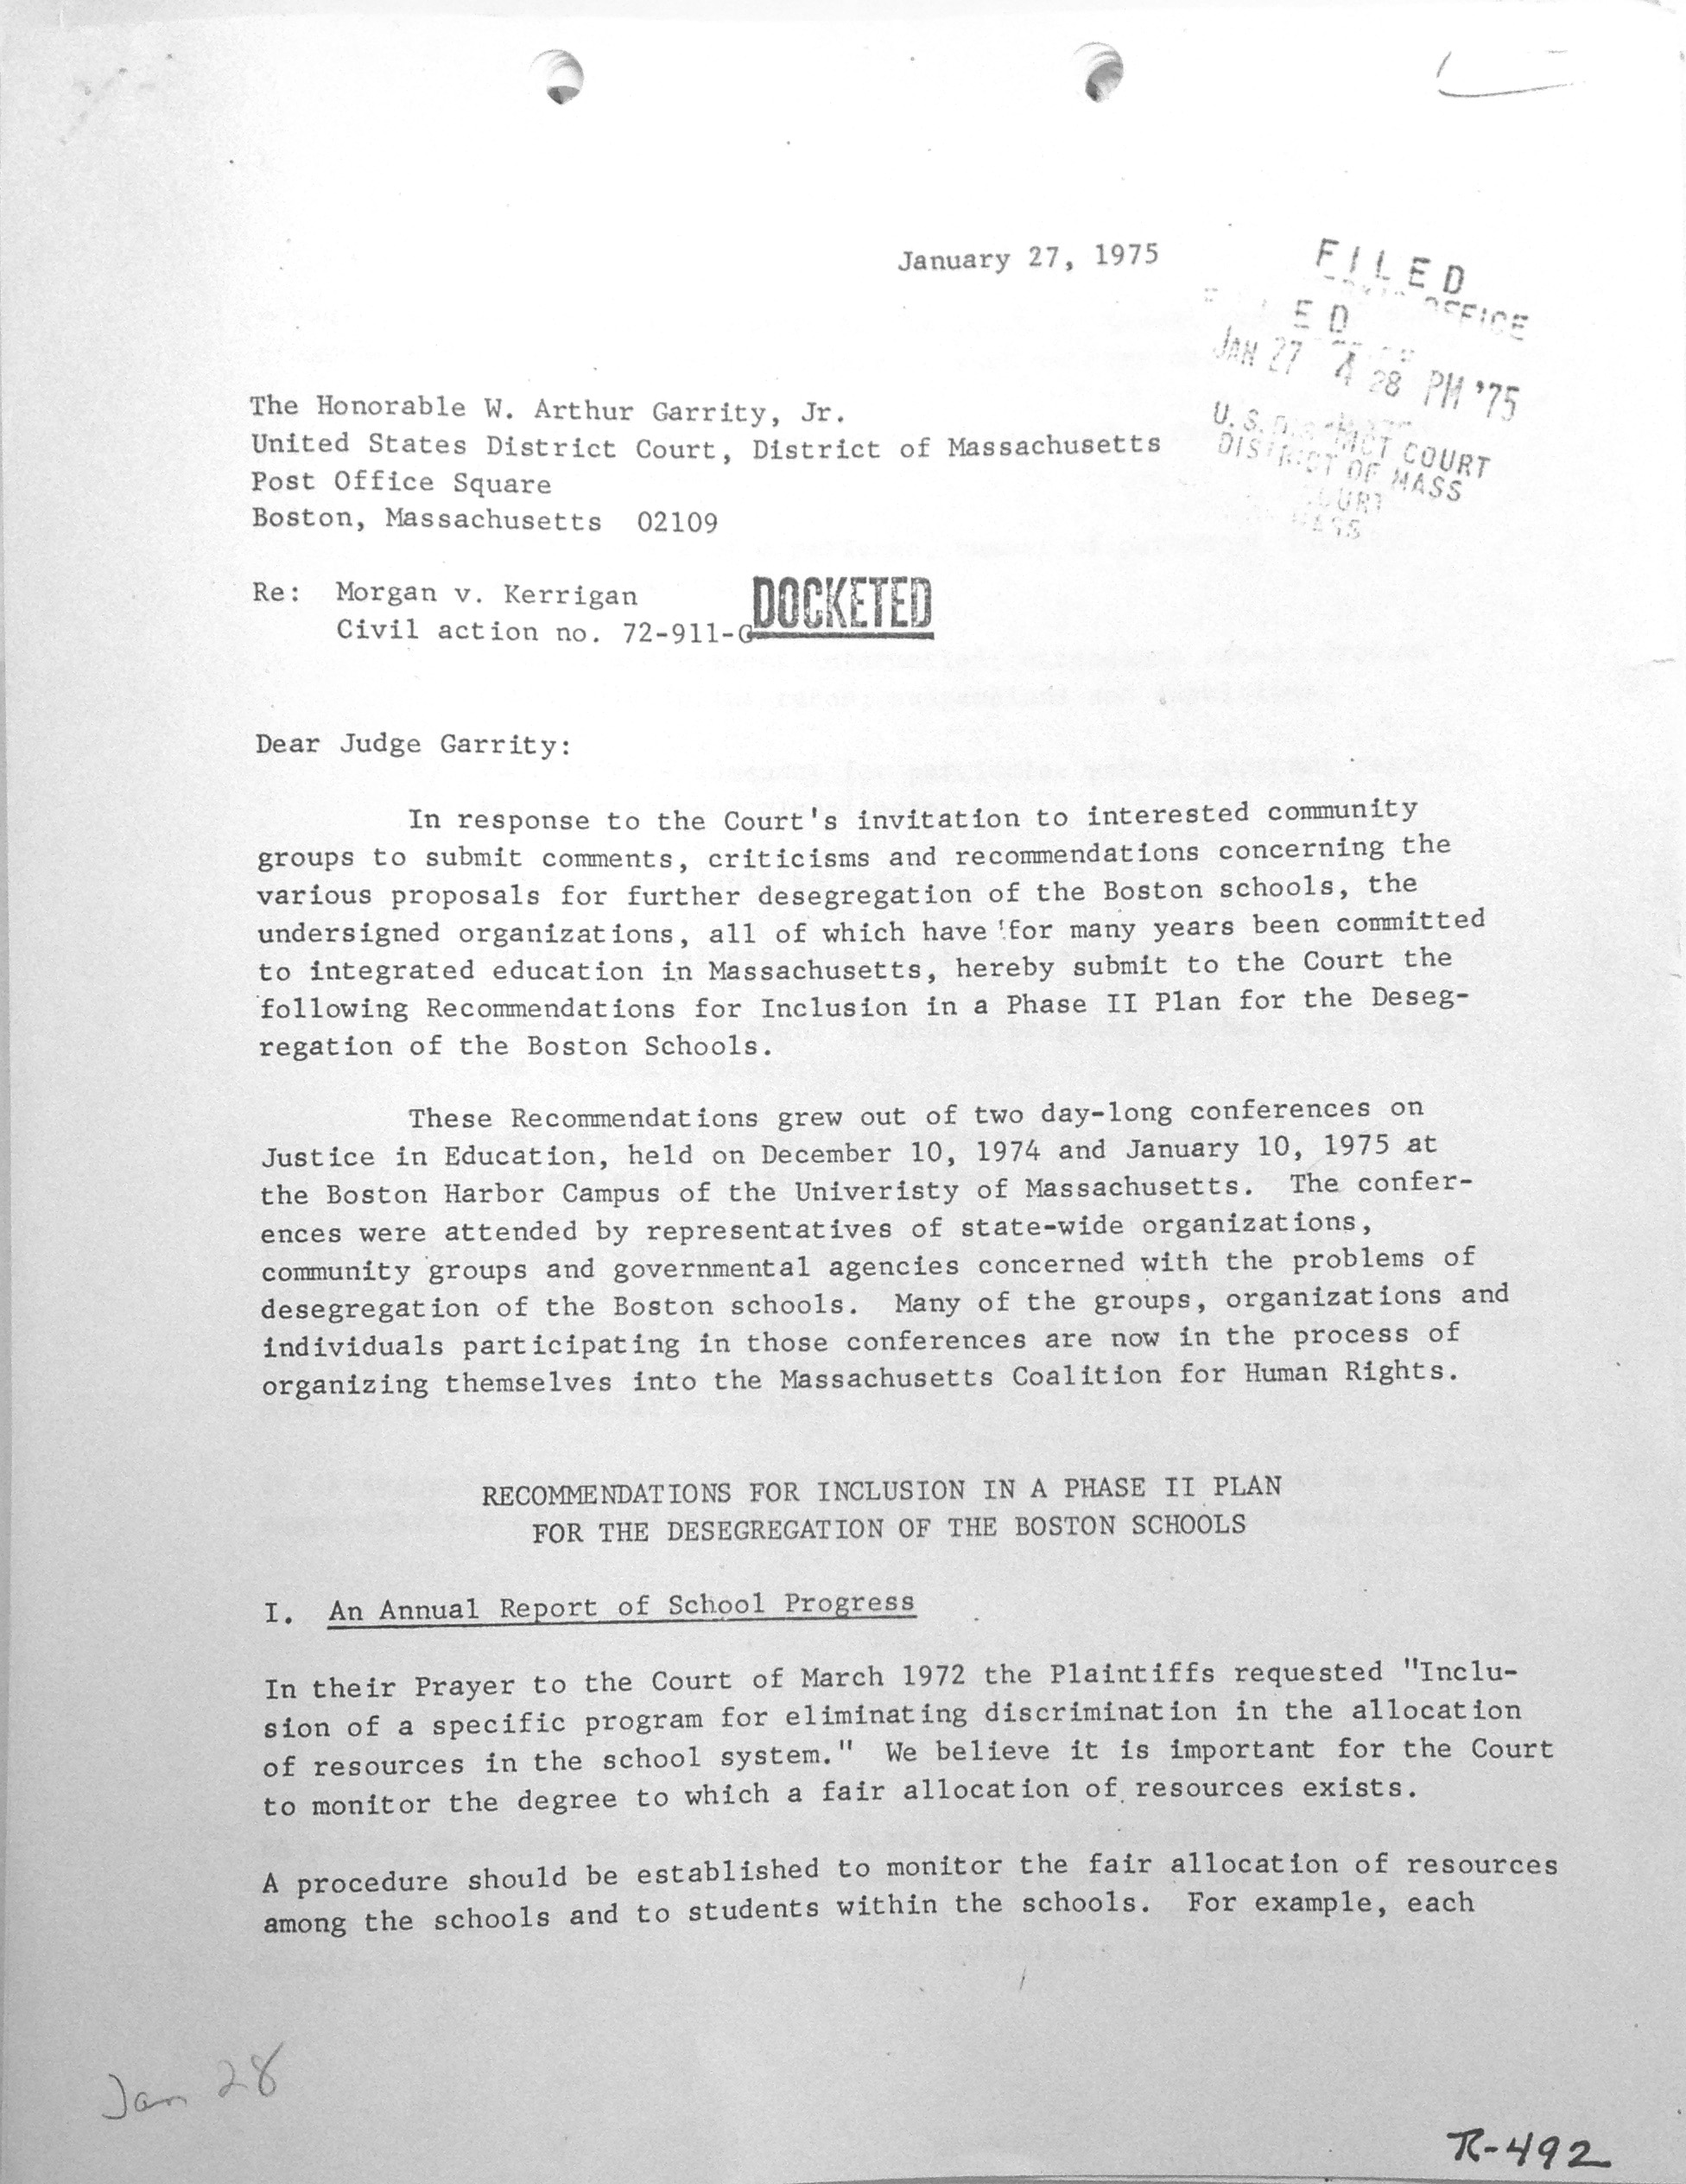 Center for Law and Education: Morgan v. Hennigan case records, Garrity correspondence, 1975